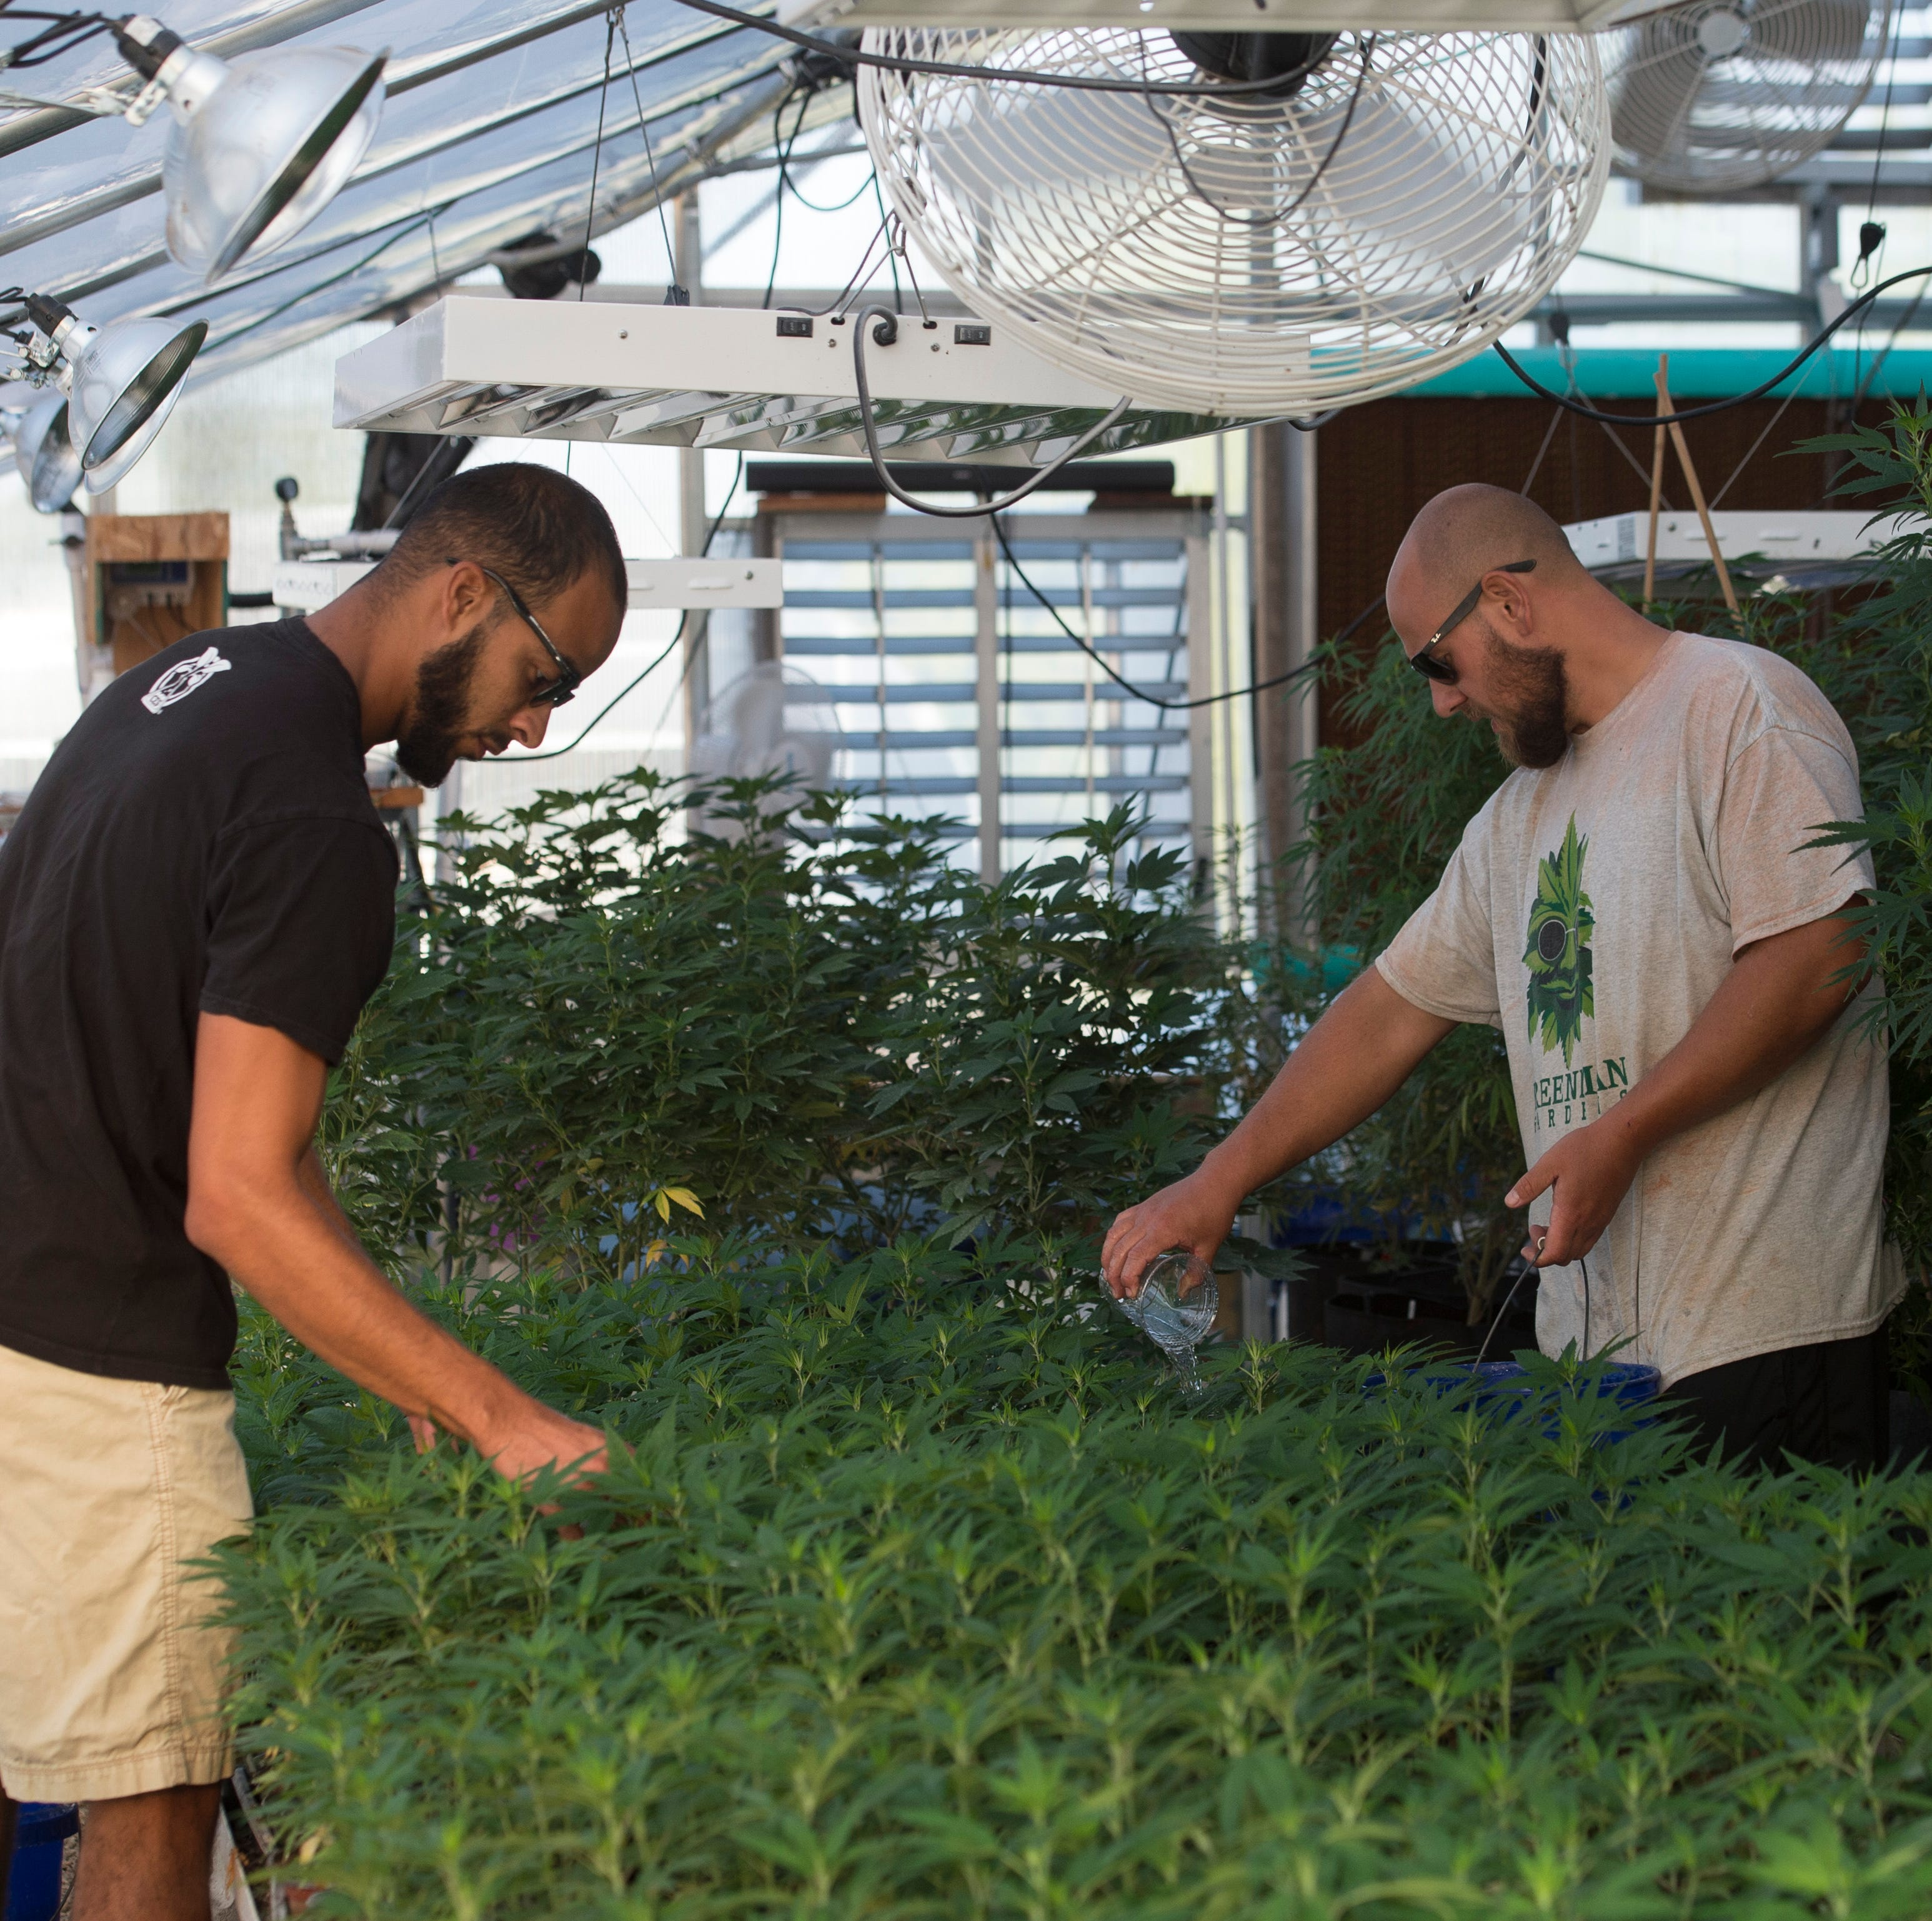 Part 2: What's the future of hemp in Henderson County?